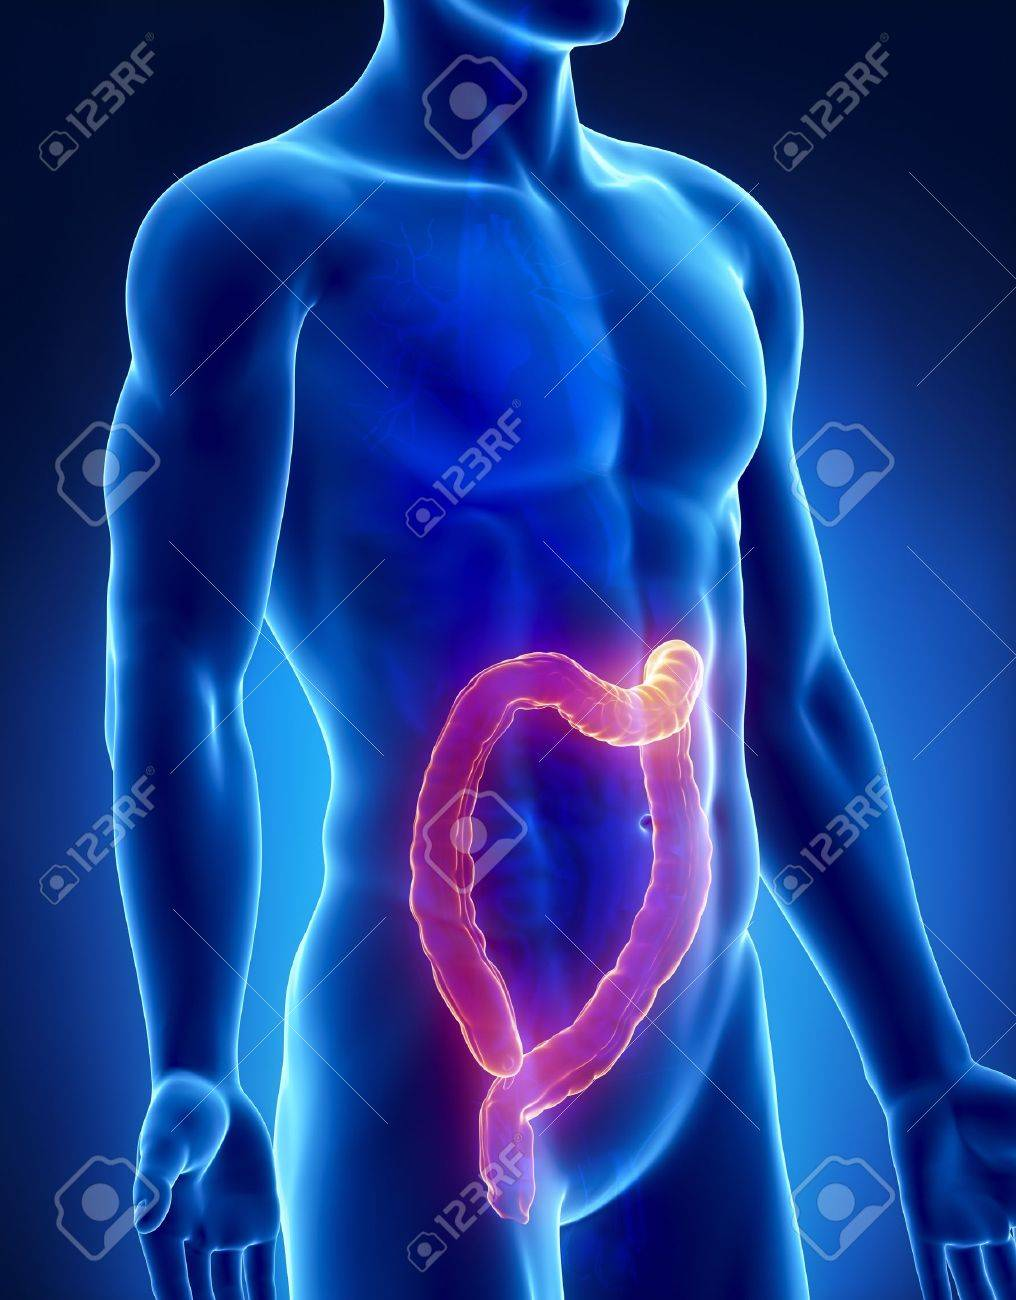 Colon male anatomy anterior x-ray view Stock Photo - 20902057